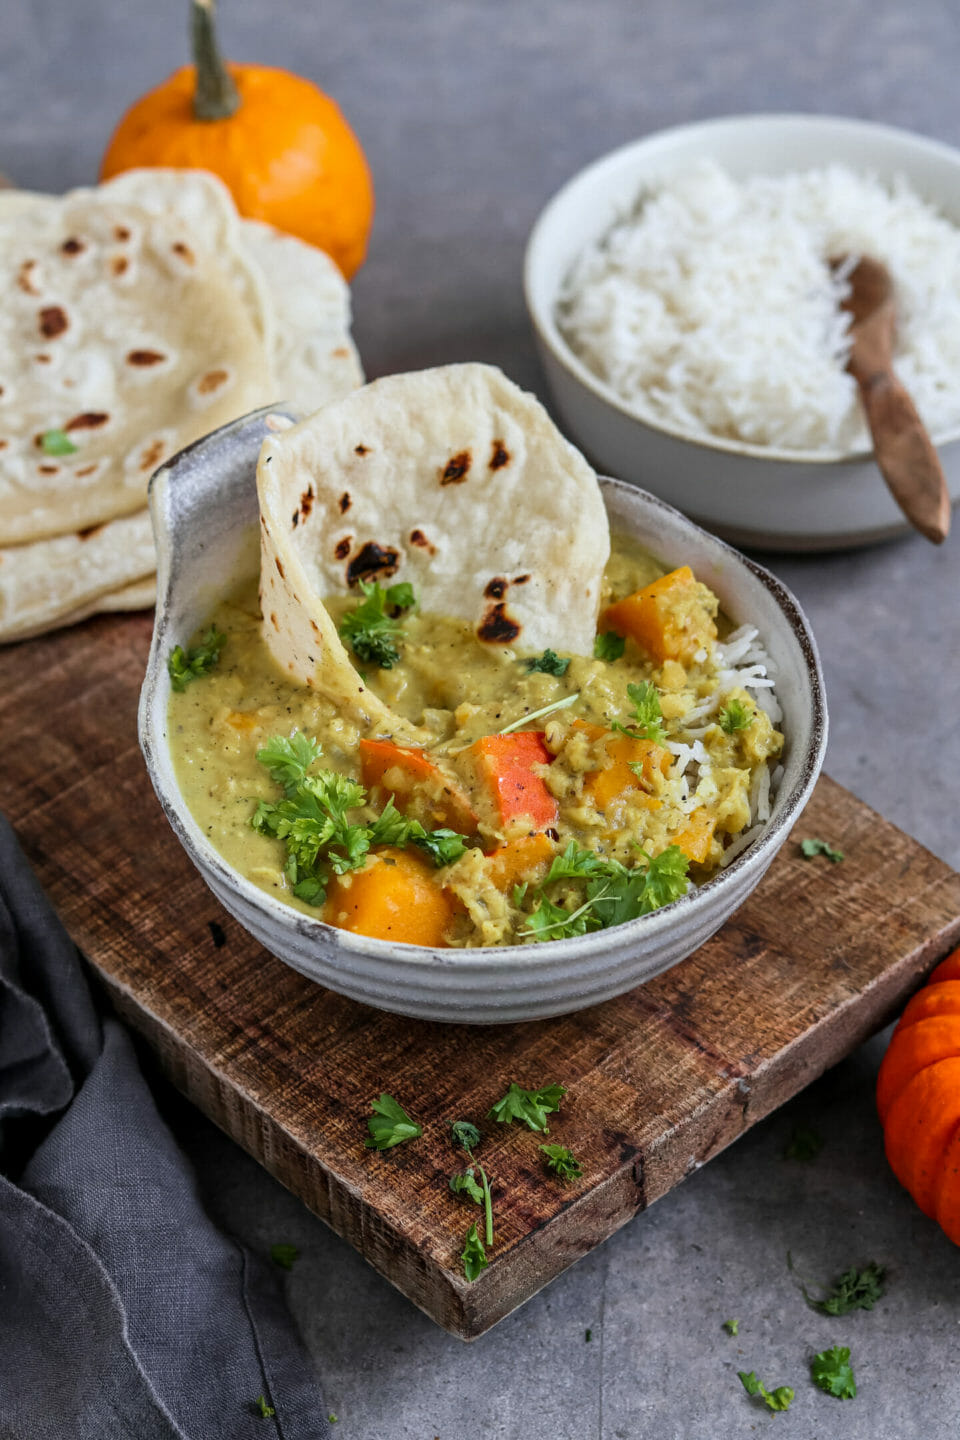 Vegan lentil curry with pumpkin served in a bowl with rice and homemade naan bread.